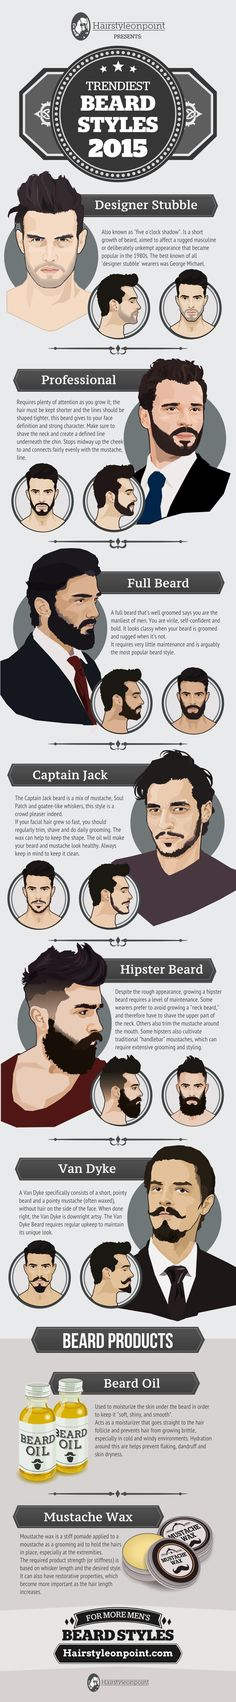 Beard trends for 2015